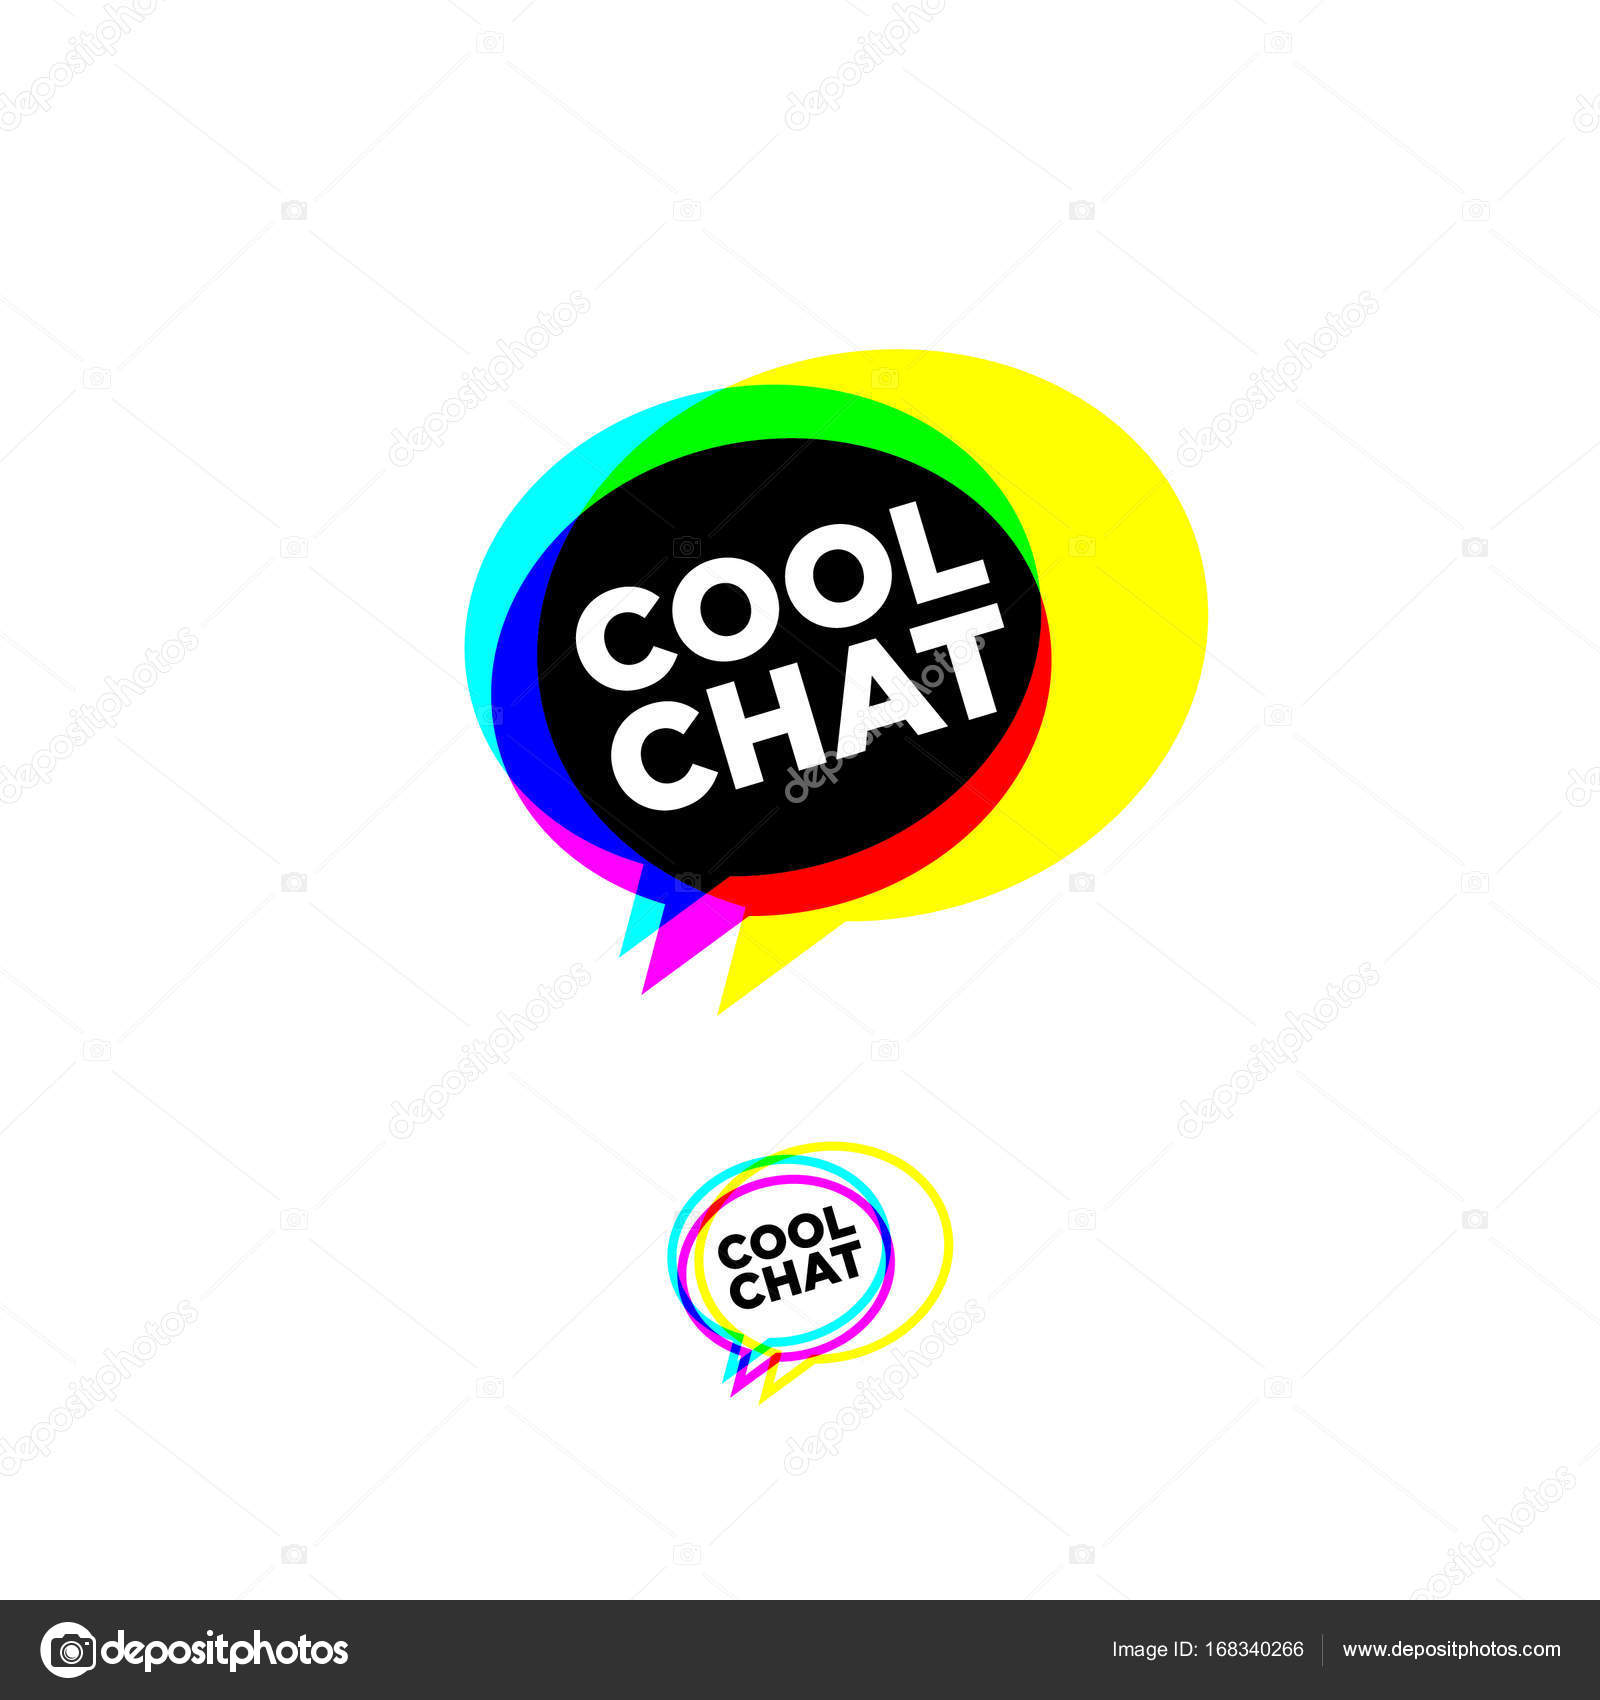 cool chat stereo logo chat emblem stock vector nataly 314 rh depositphotos com stereological stereological imaging